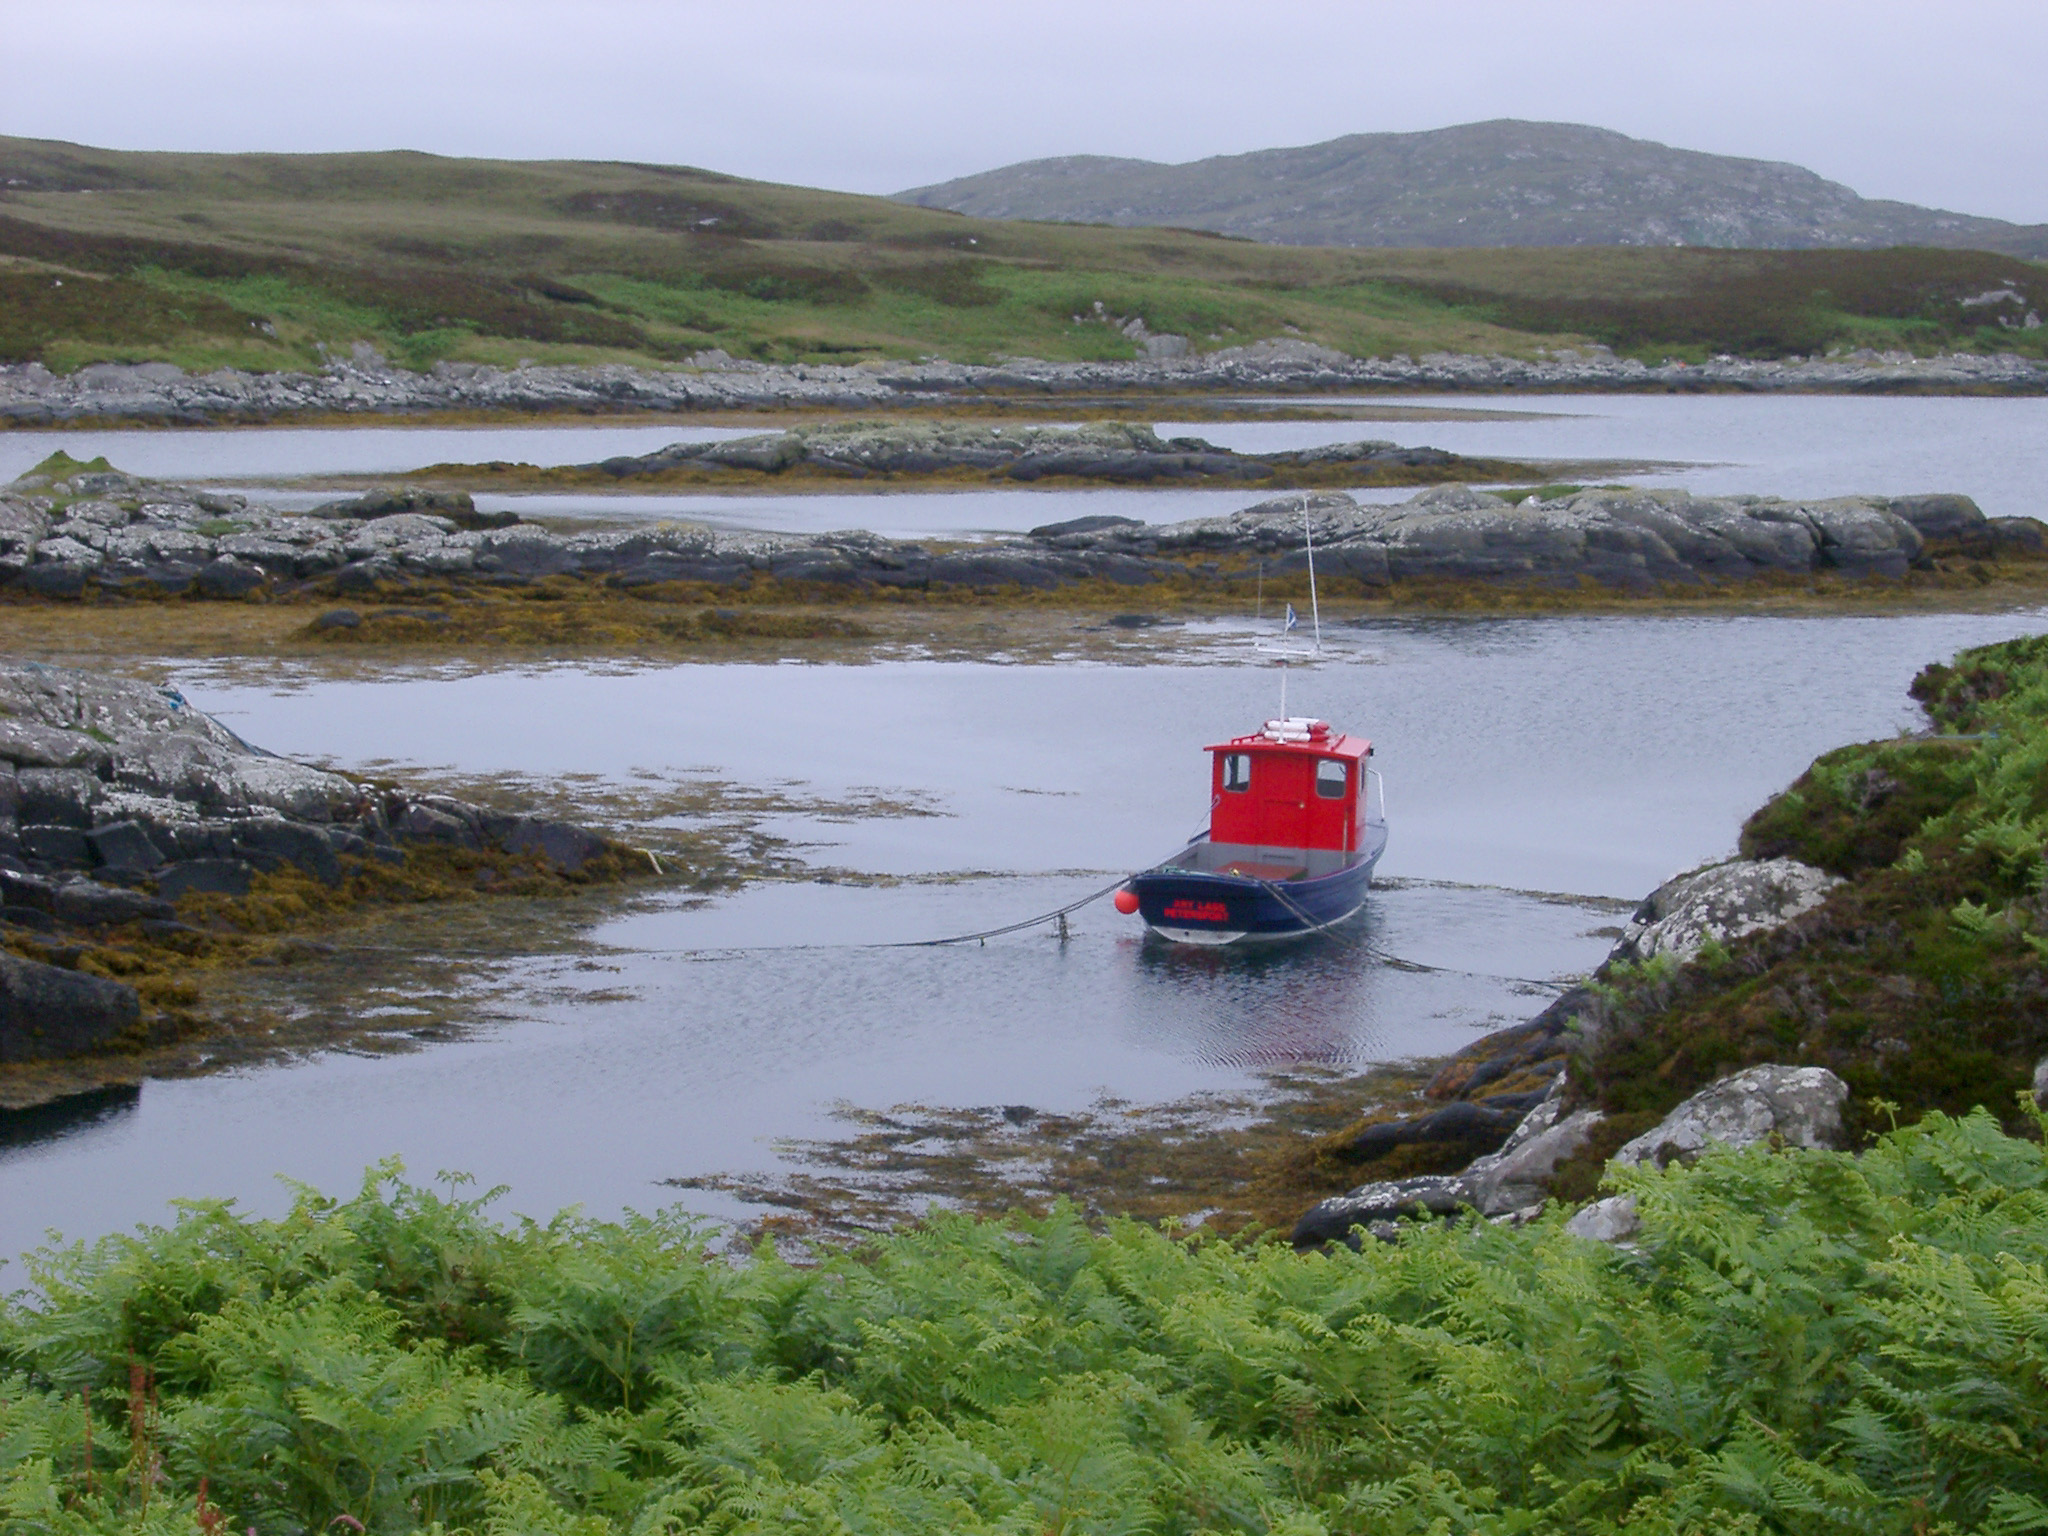 Small fishing boat moored in a sheltered inlet surrounded by seaweed on the Hebrides, Scotland